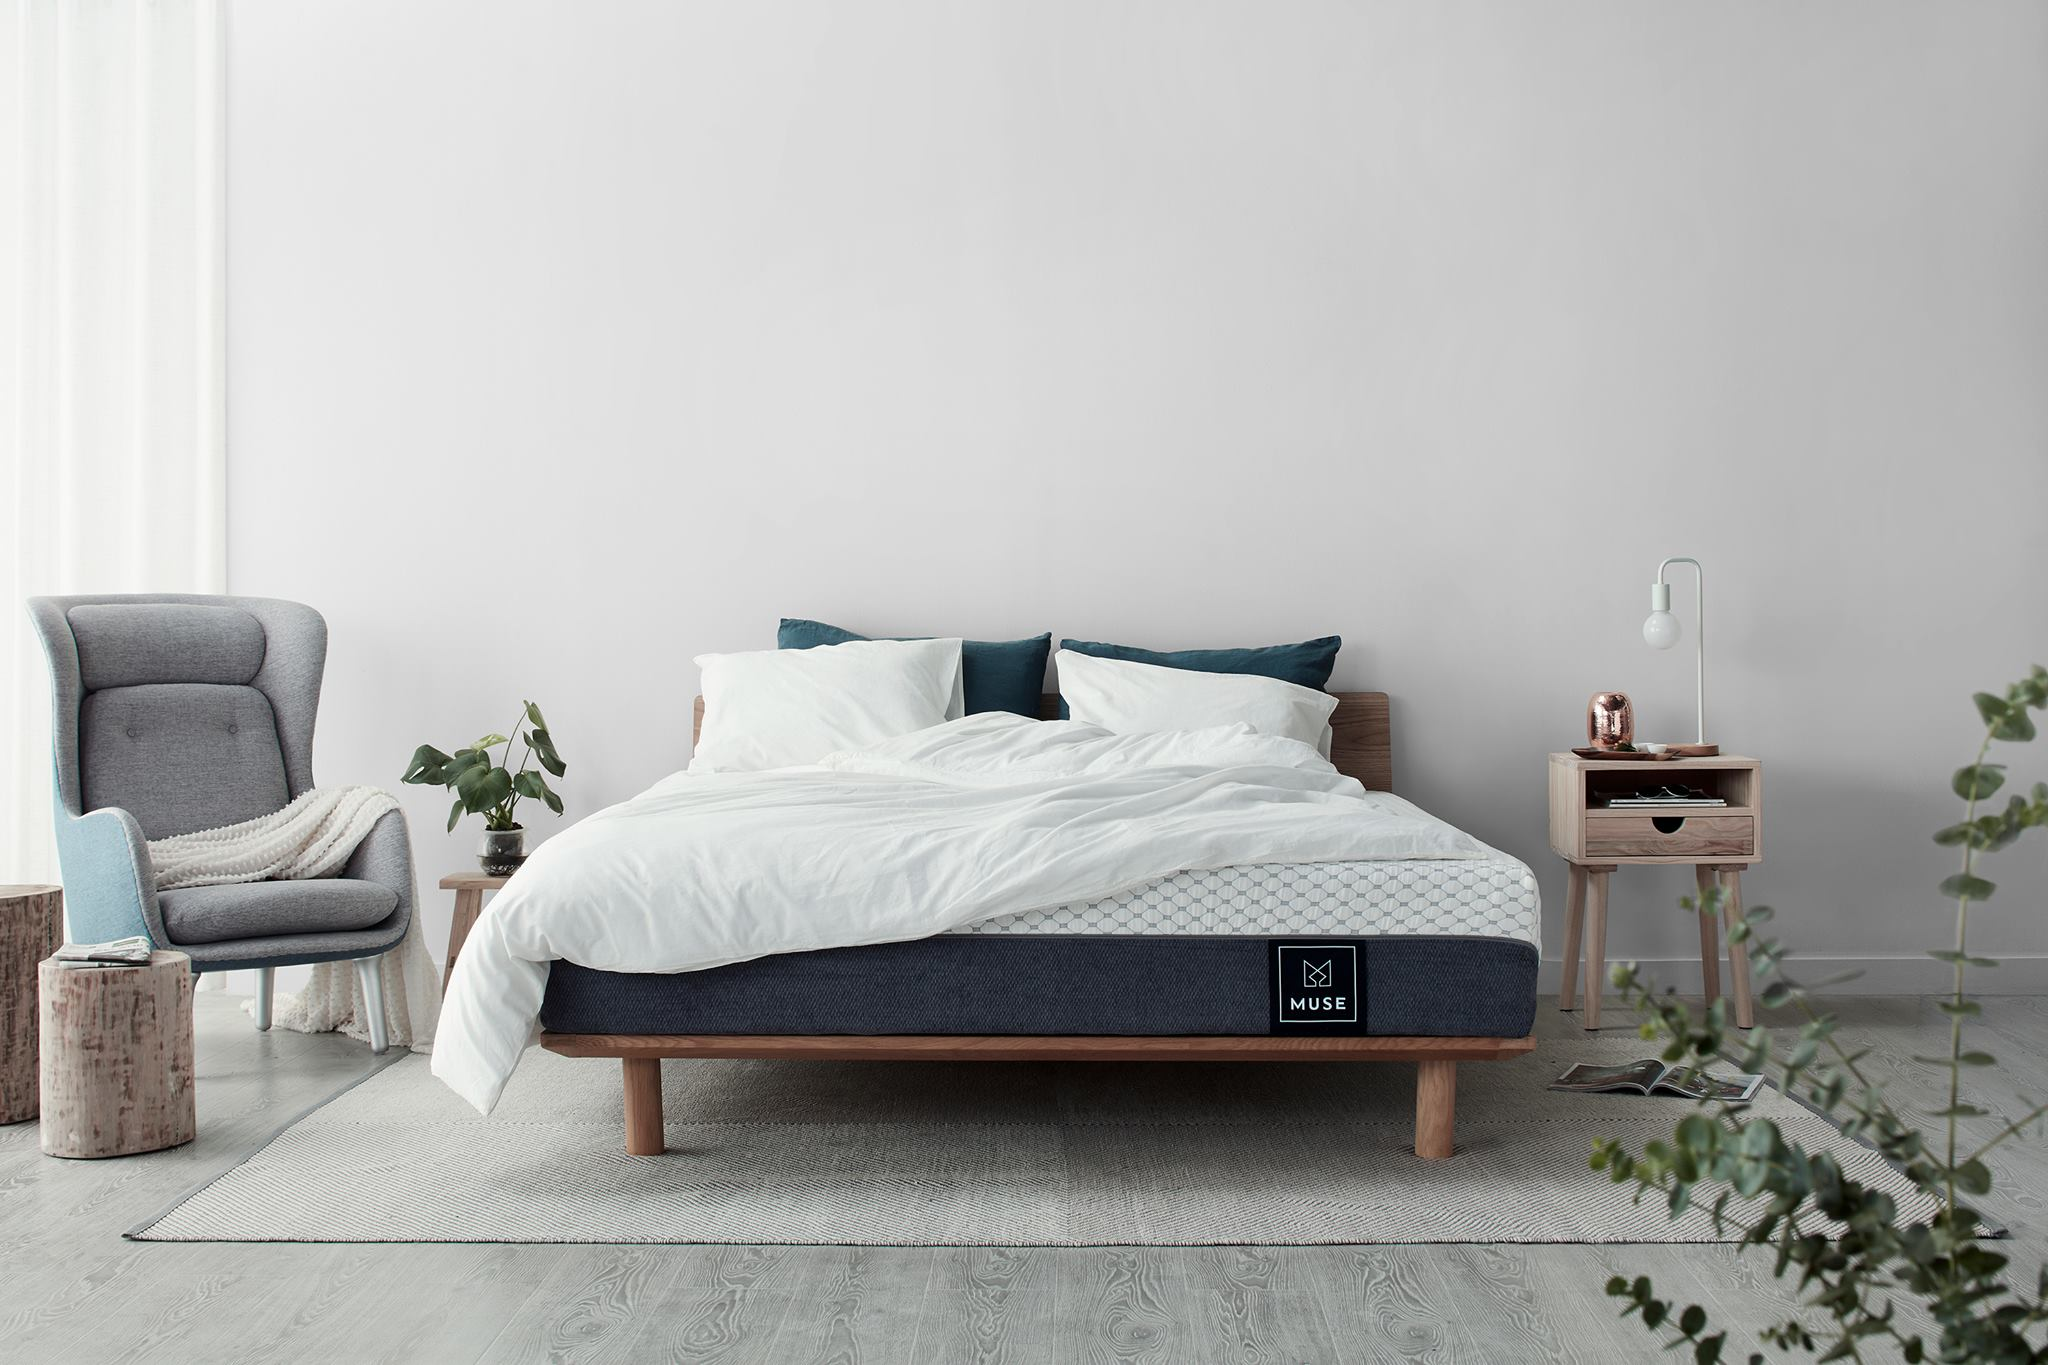 The Muse mattress in a bedroom